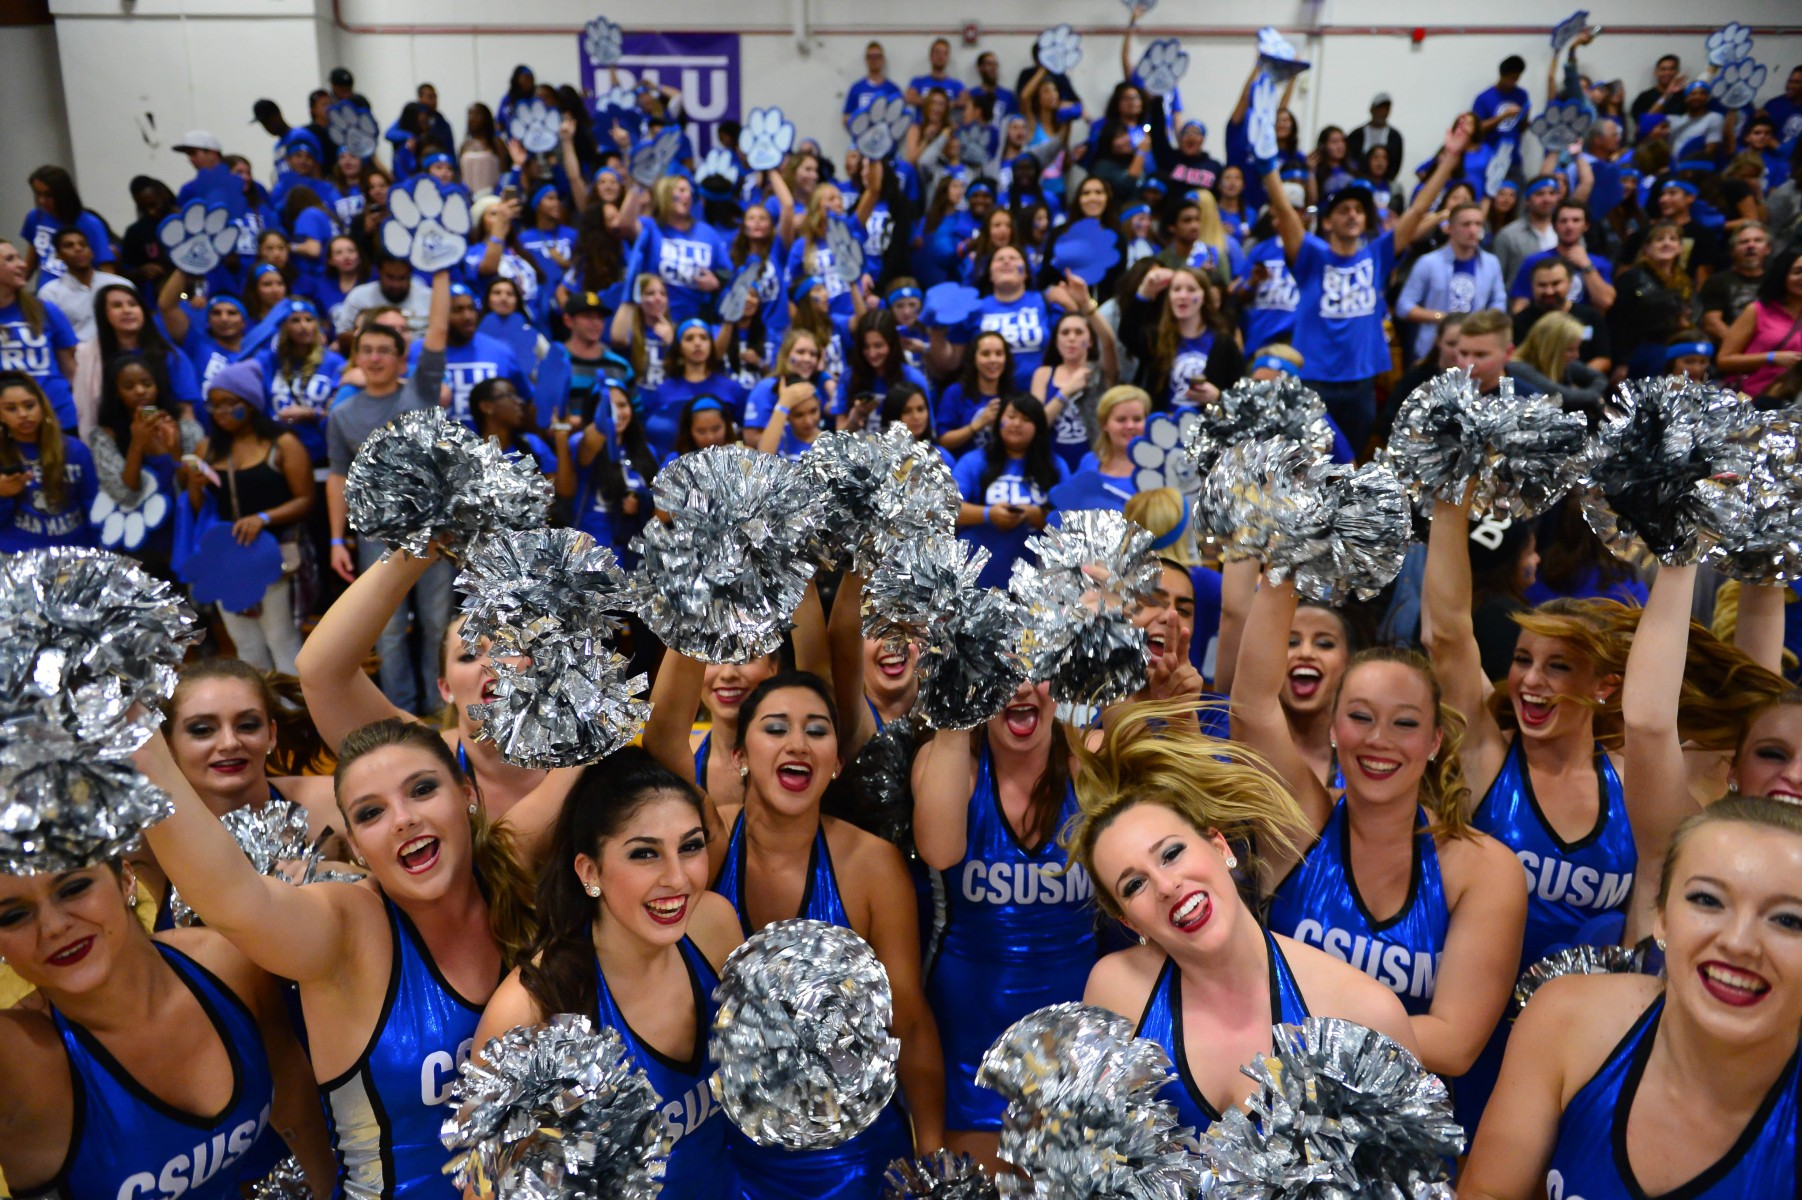 Dance Team and fans cheer on the Cougars at a Homecoming basketball game.